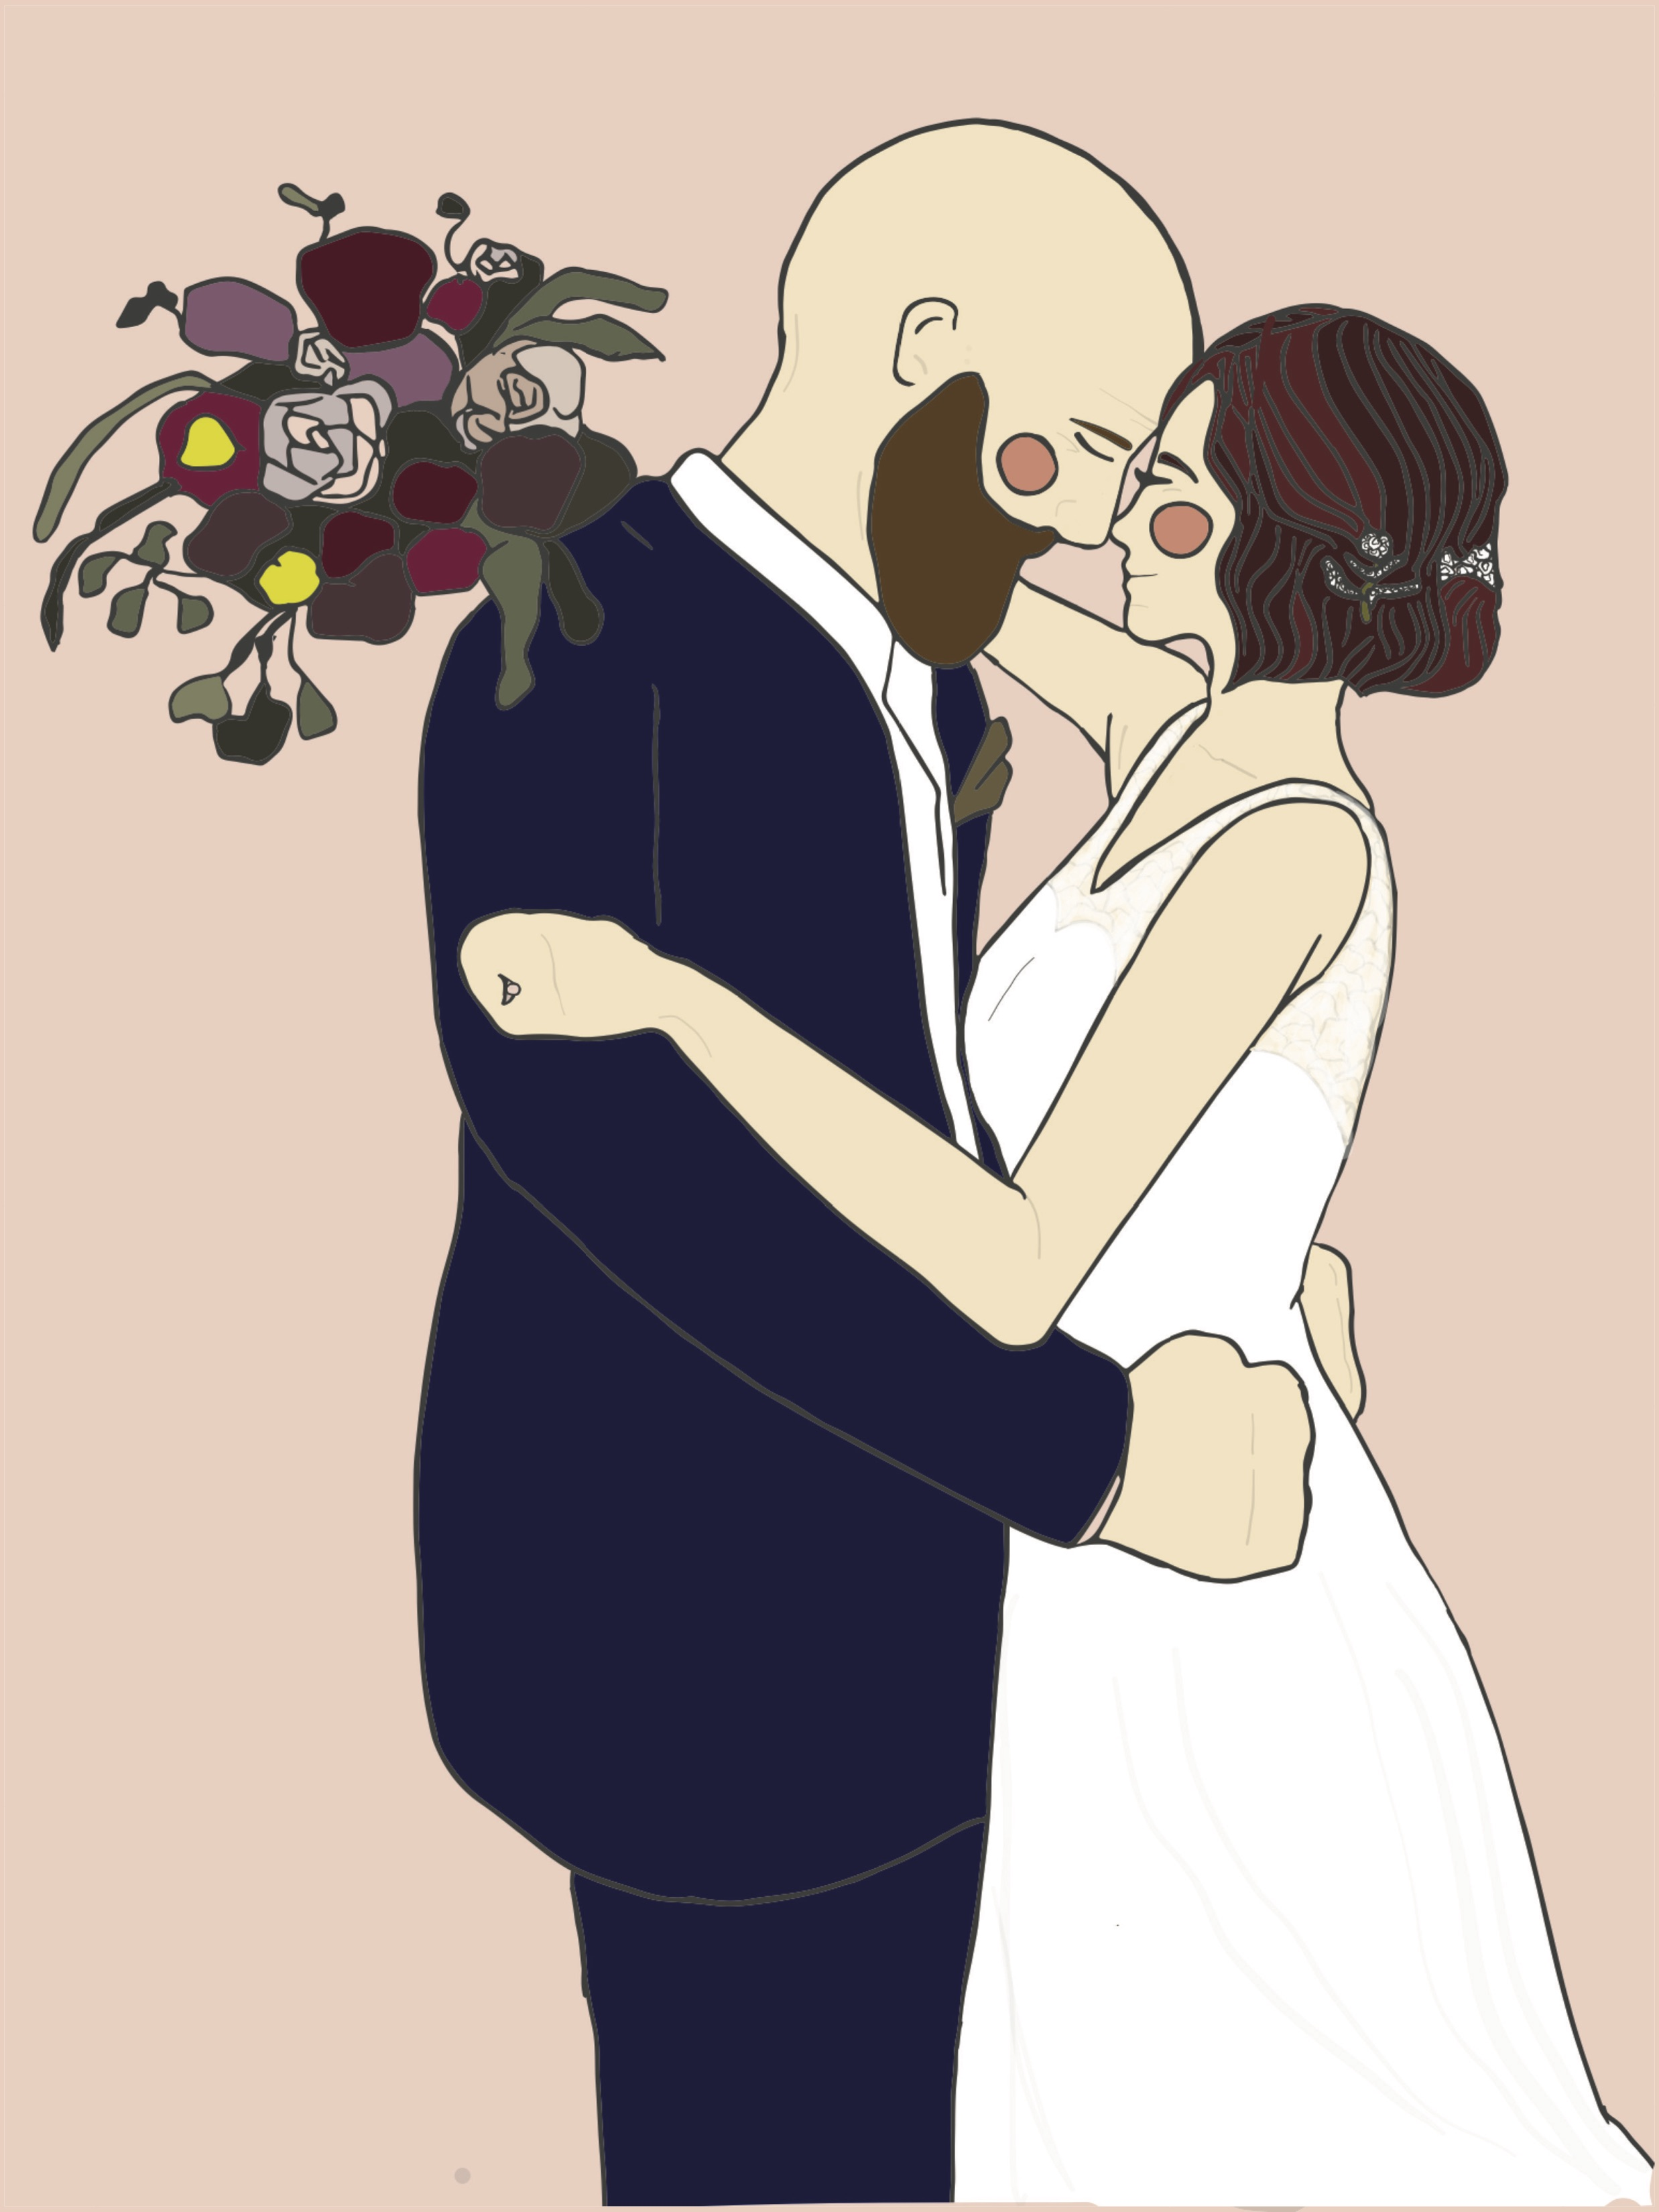 SPECIAL ILLUSTRATION - GET YOUR FAVORITE WEDDING PHOTO ILLUSTRATED